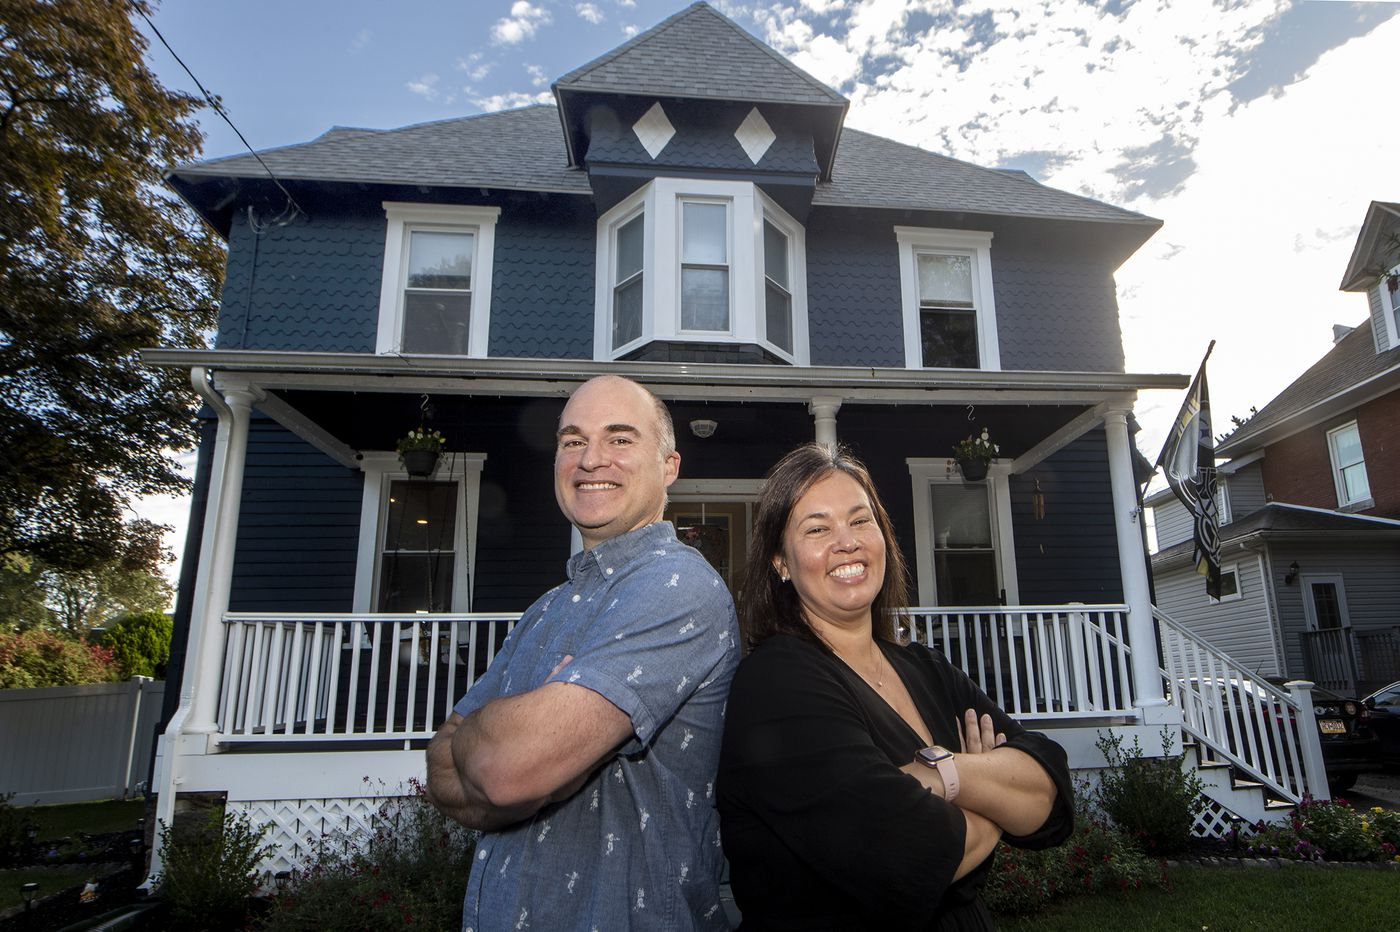 Perseverance helped this couple get the house they loved in Delaware County